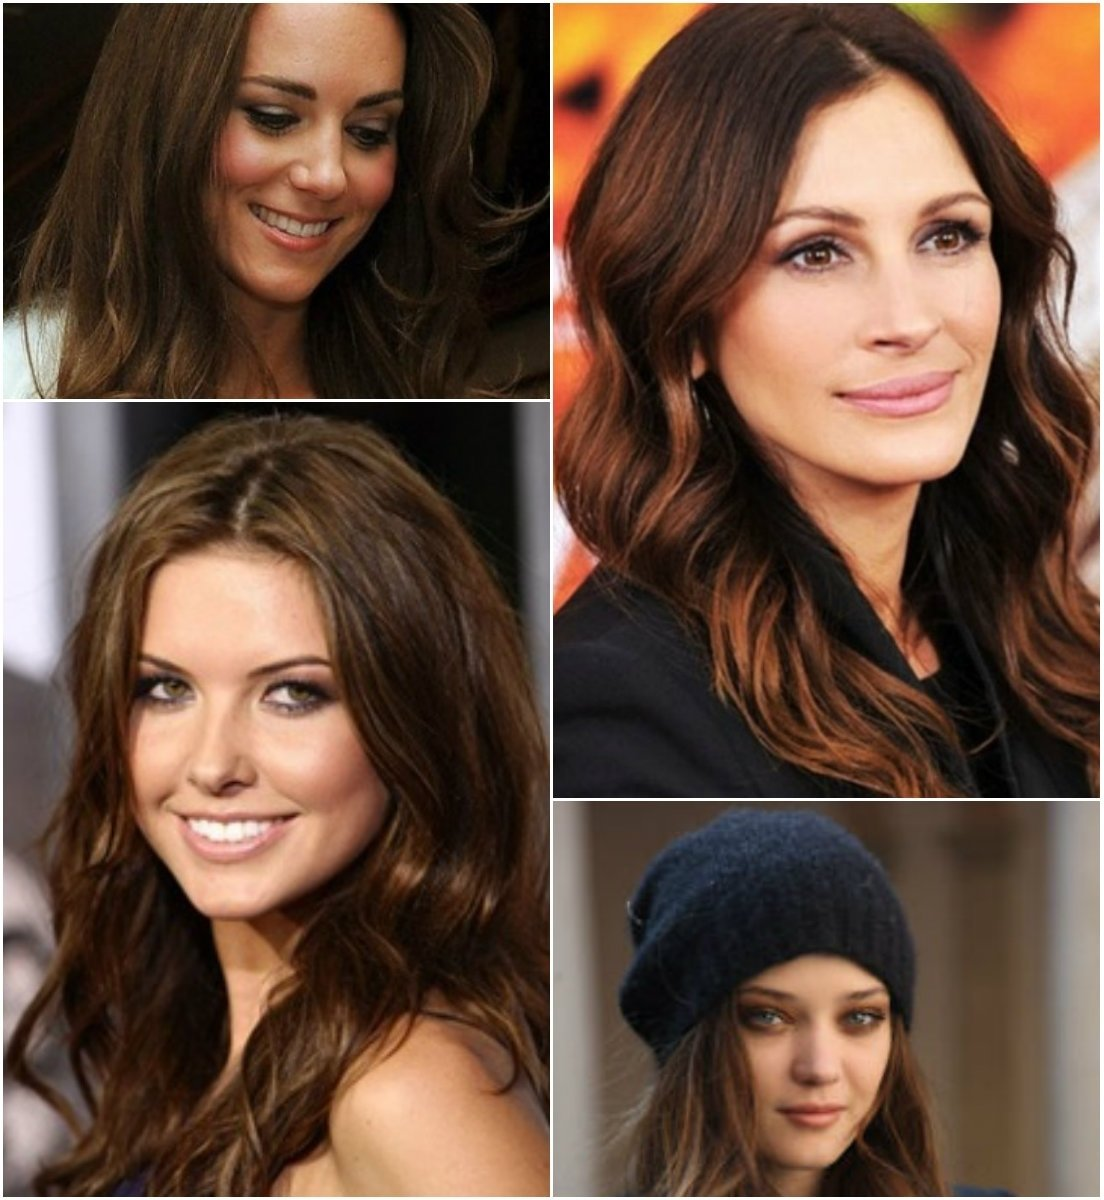 10 Most Recommended Hair Color Ideas For 2013 5 striking dark hair color ideas for thanksgiving day 2013 1 2020